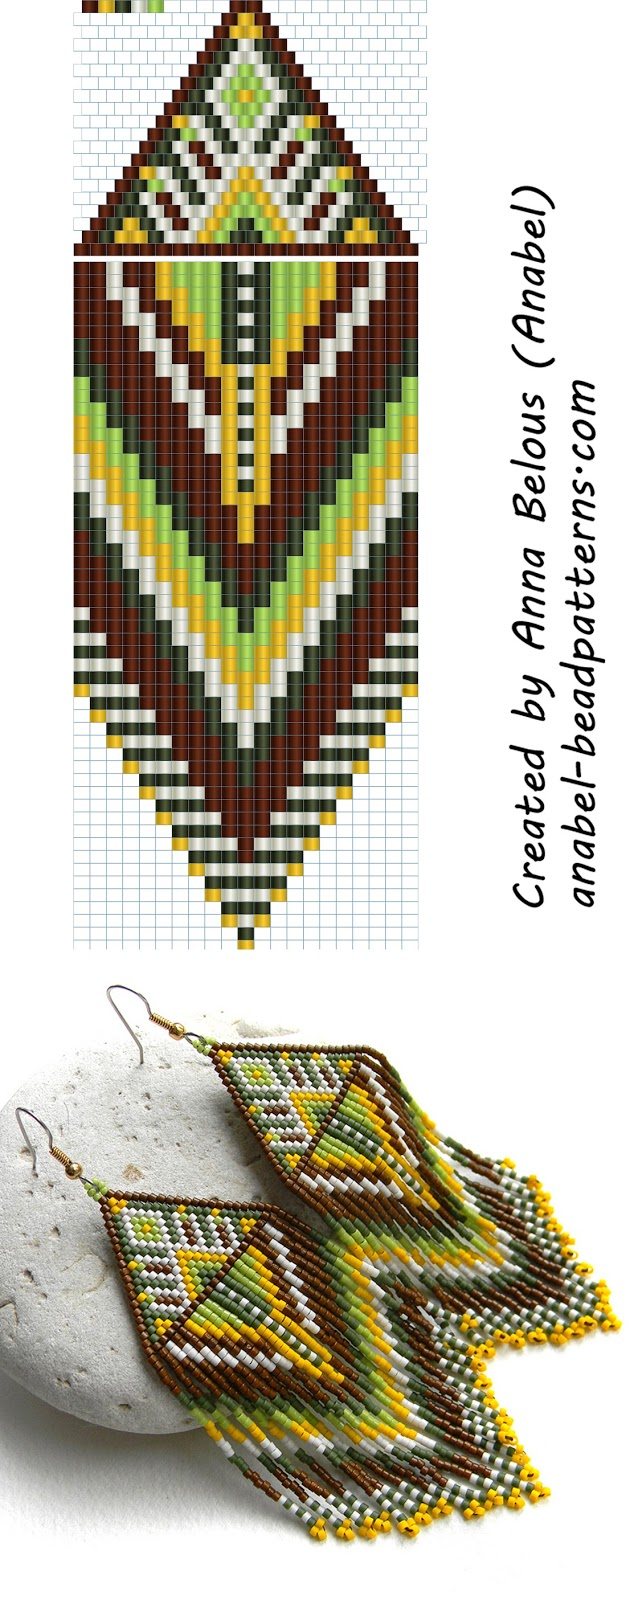 earrings pattern peyote pattern beadwork brick stitch earrings fringe beadwoven earrings